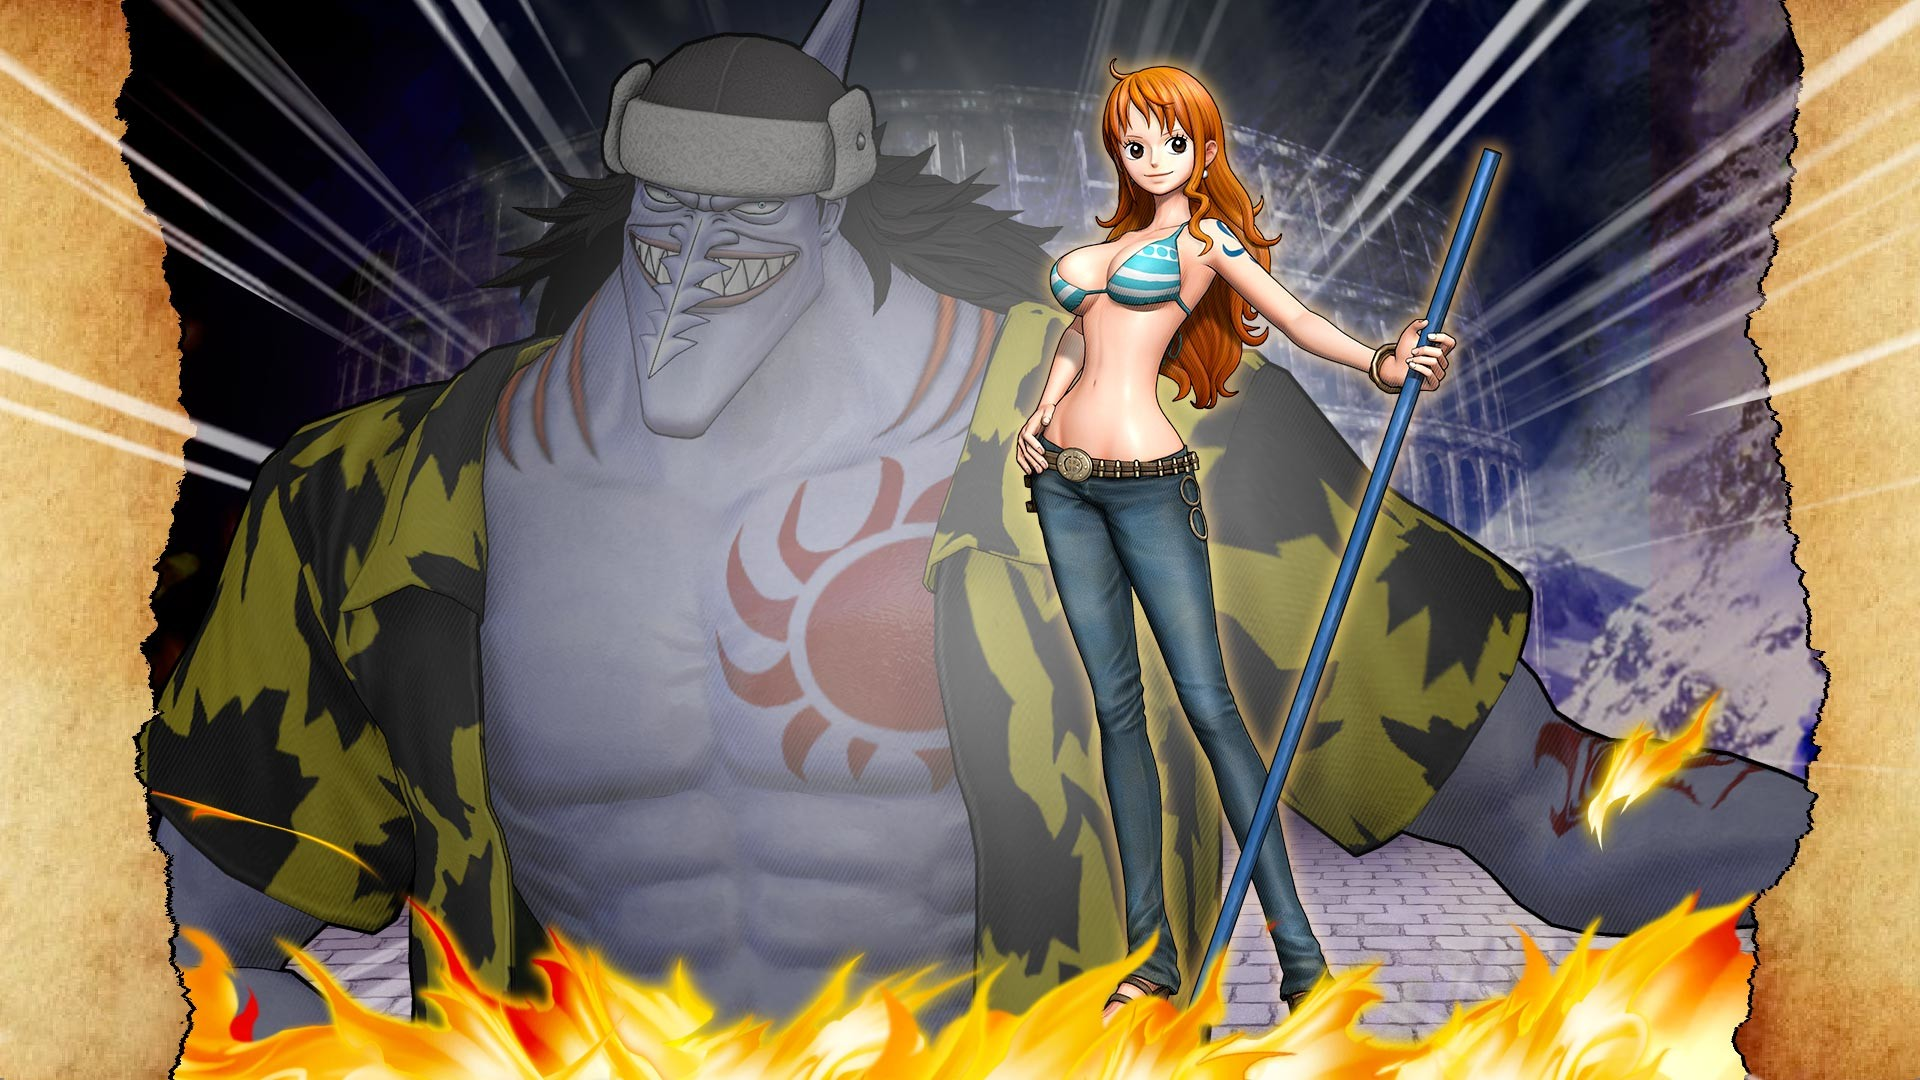 Res: 1920x1080, Nami Wallpaper from One Piece: Pirate Warriors 3